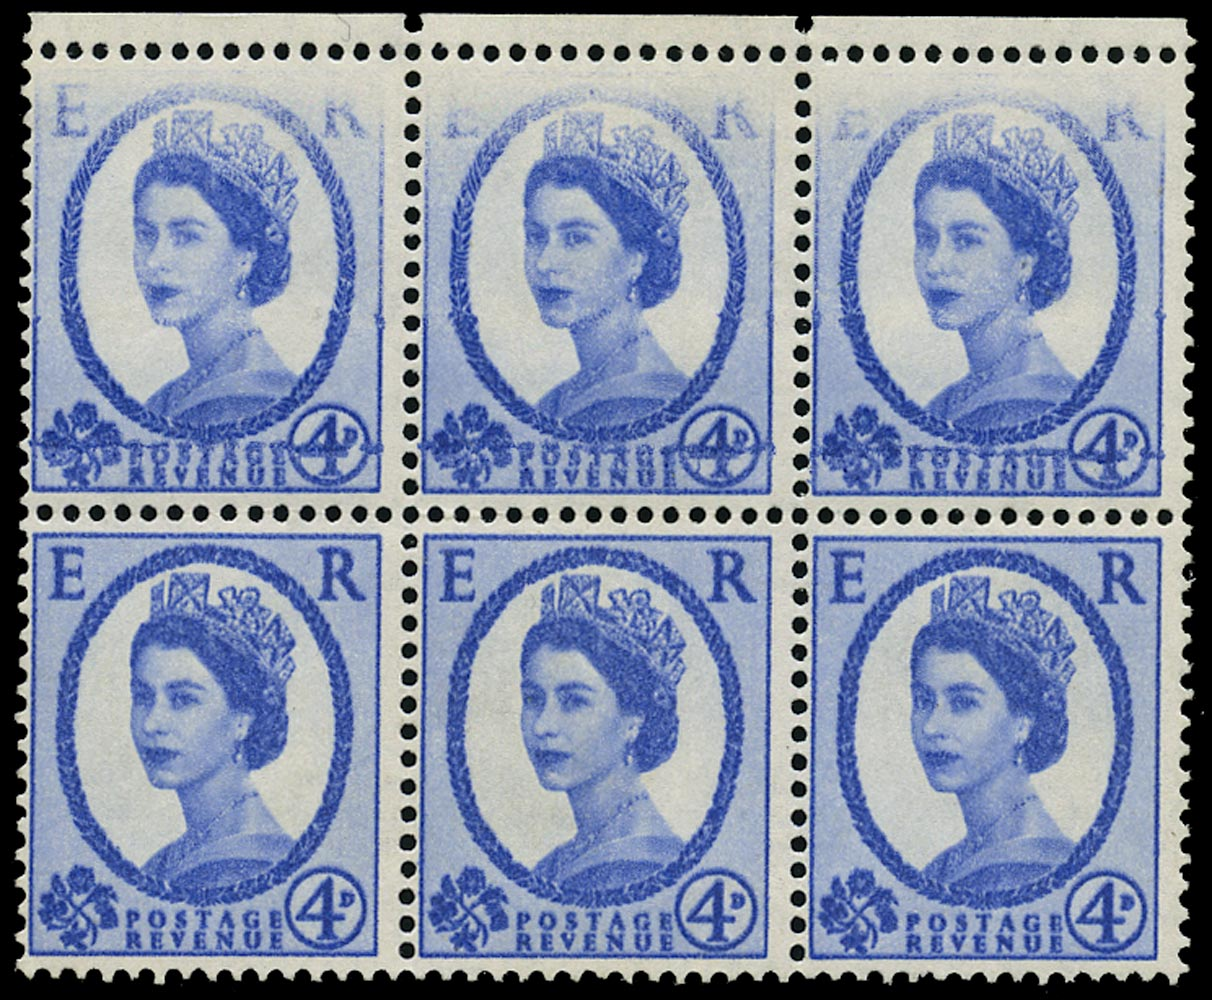 GB 1965  SG576a var Mint - double impression and dry print